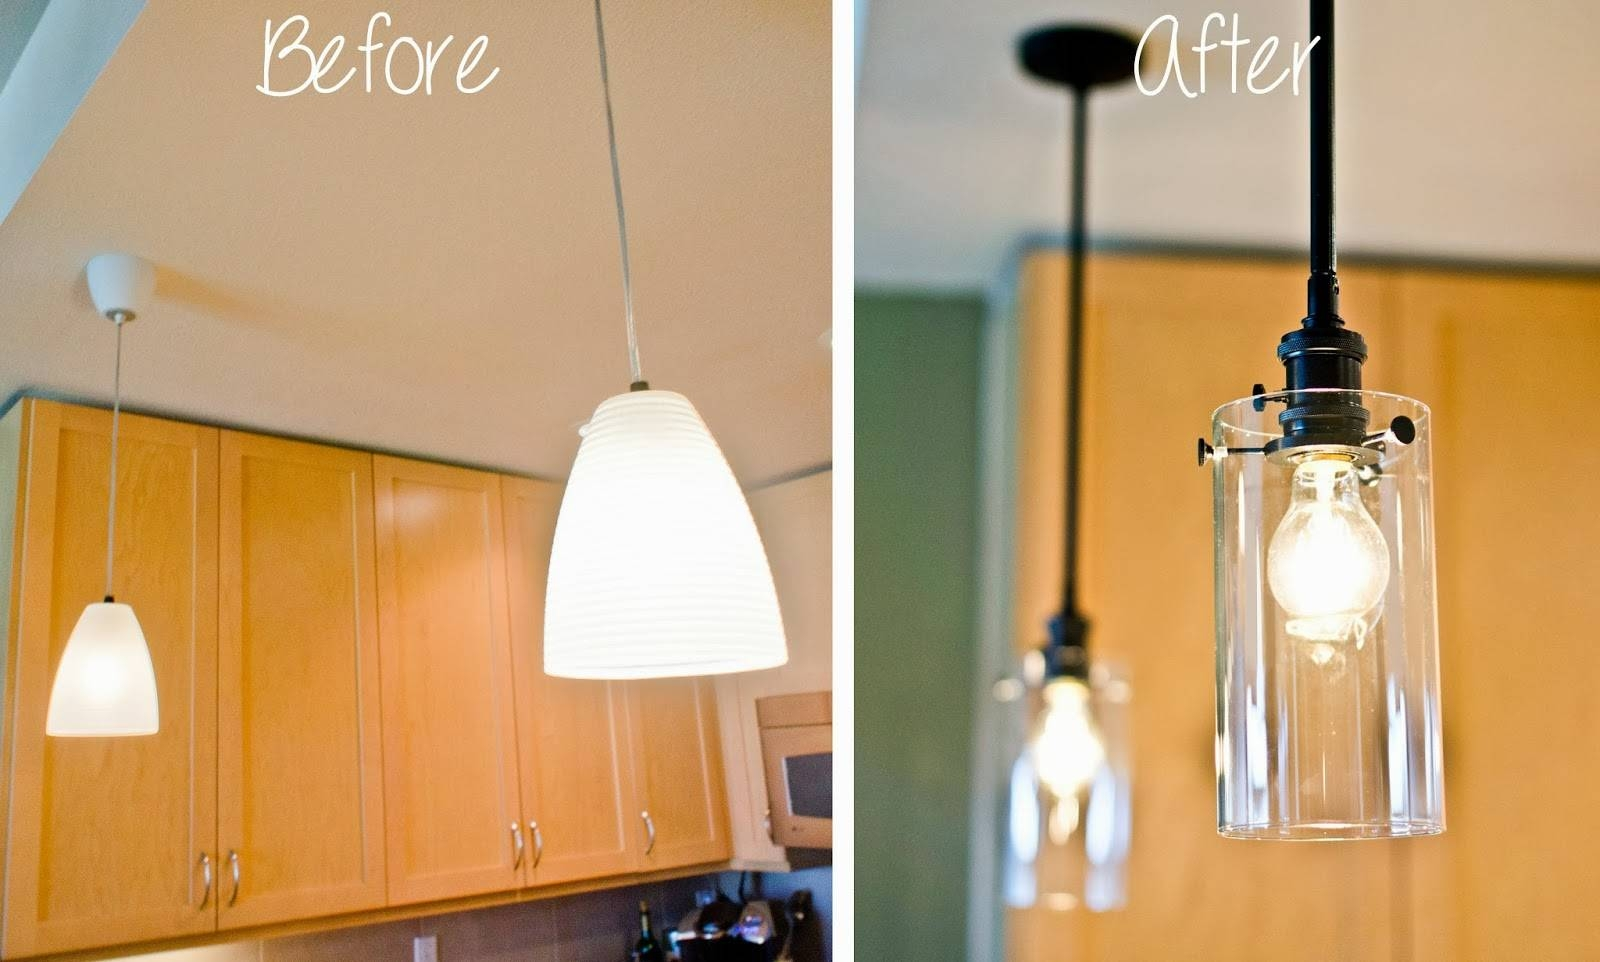 Kitchen Light : Beauteous Mini Pendant Lights For Kitchen Island for Halogen Mini Pendant Lights (Image 9 of 15)